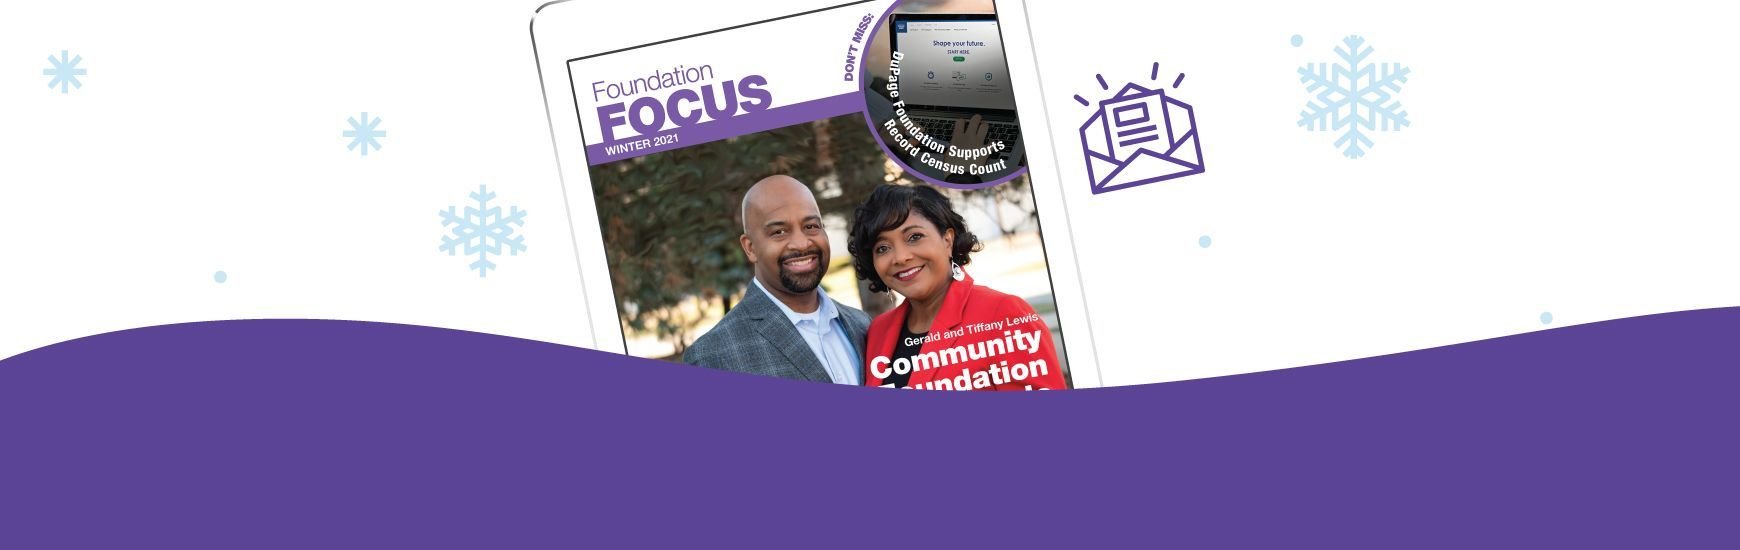 Meet The Lewises: Community Foundation Power Couple